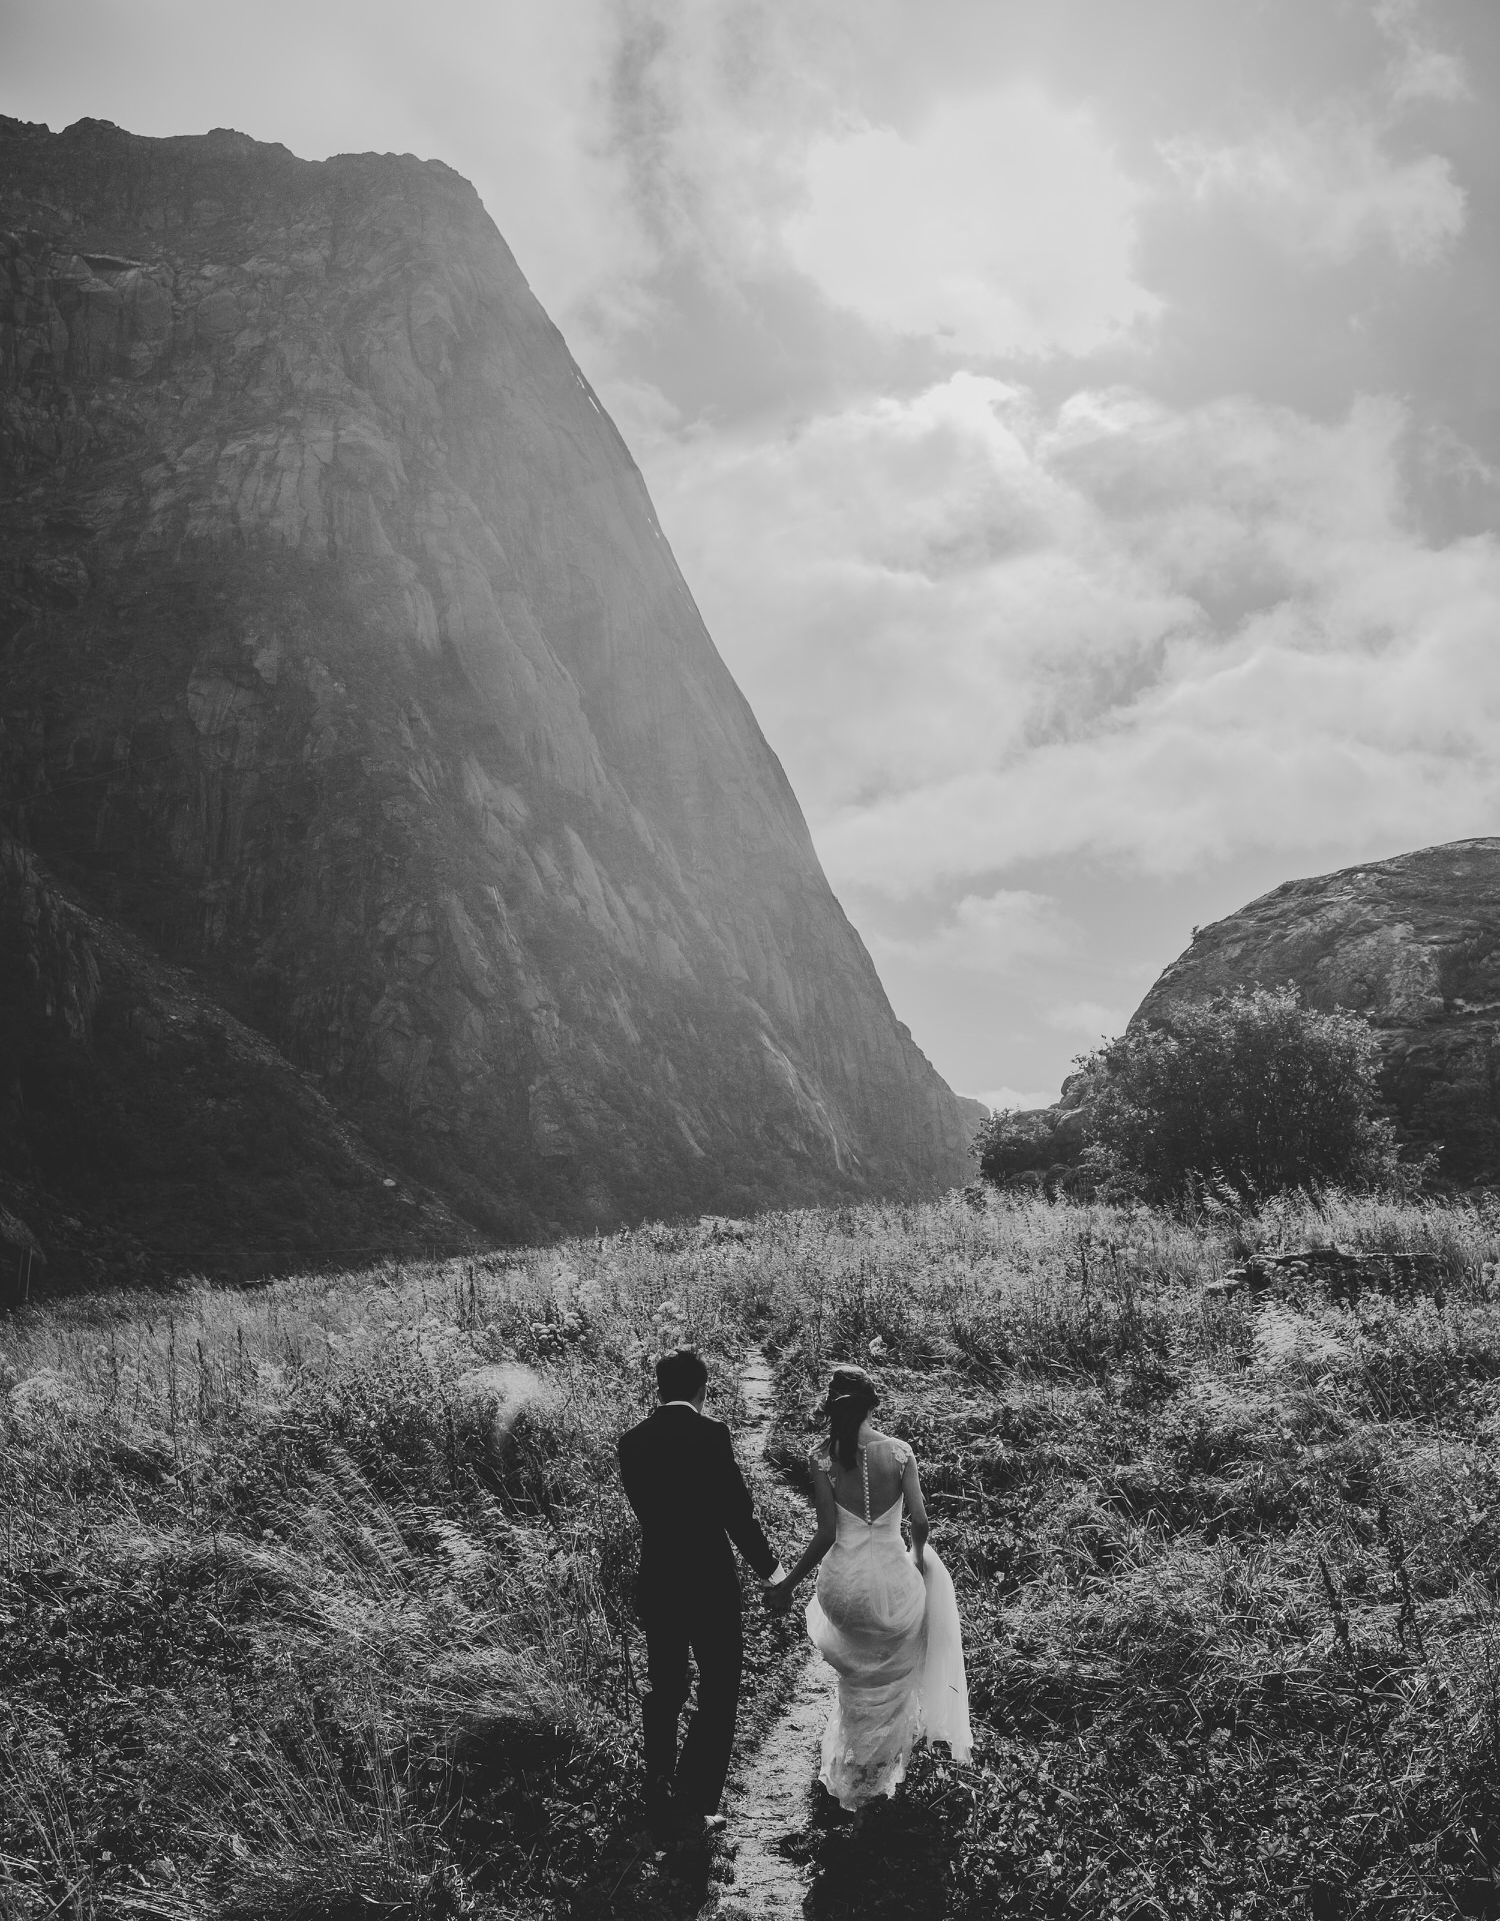 One more from the Lofoten pre wedding shoot. This image is such a good metaphore I think. It's the beginning of these two people's lives together, they don't know where it will lead them, but they are together!